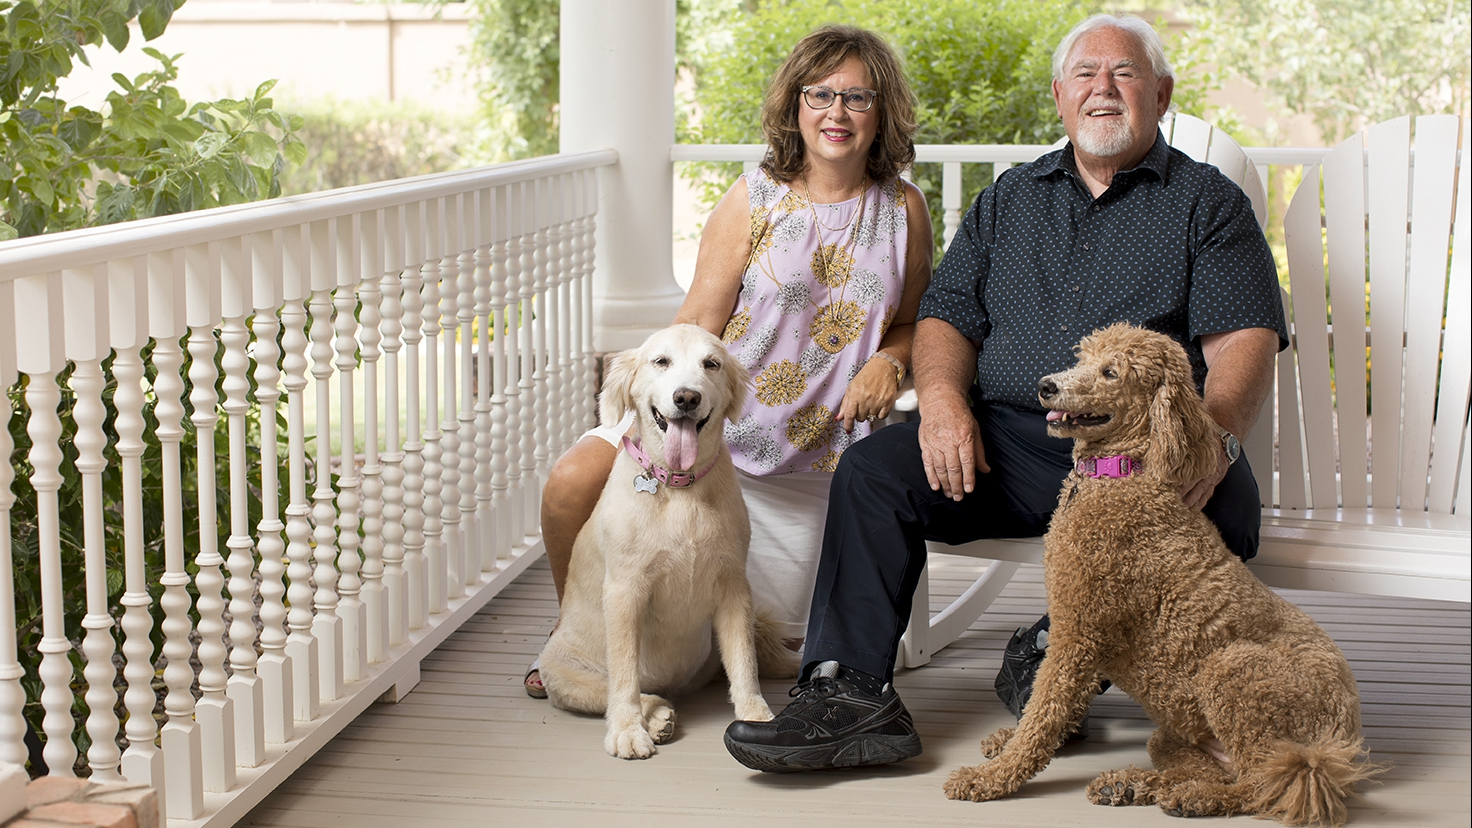 Susan and Tom Gus sitting on a porch with their dogs